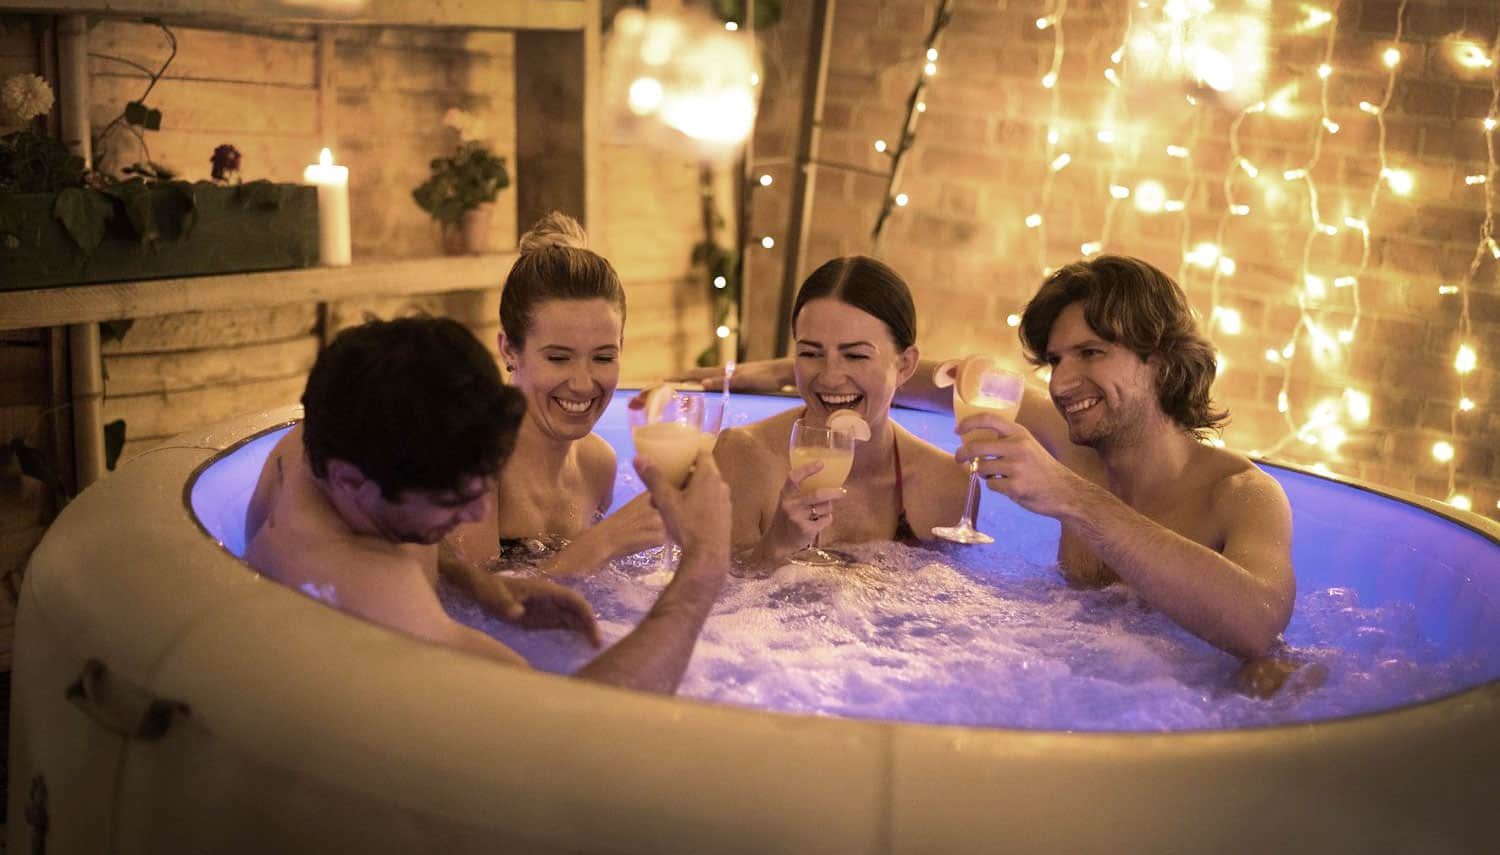 6 Best Inflatable Hot Tub - 2018 Ranking - Bestazy Reviews